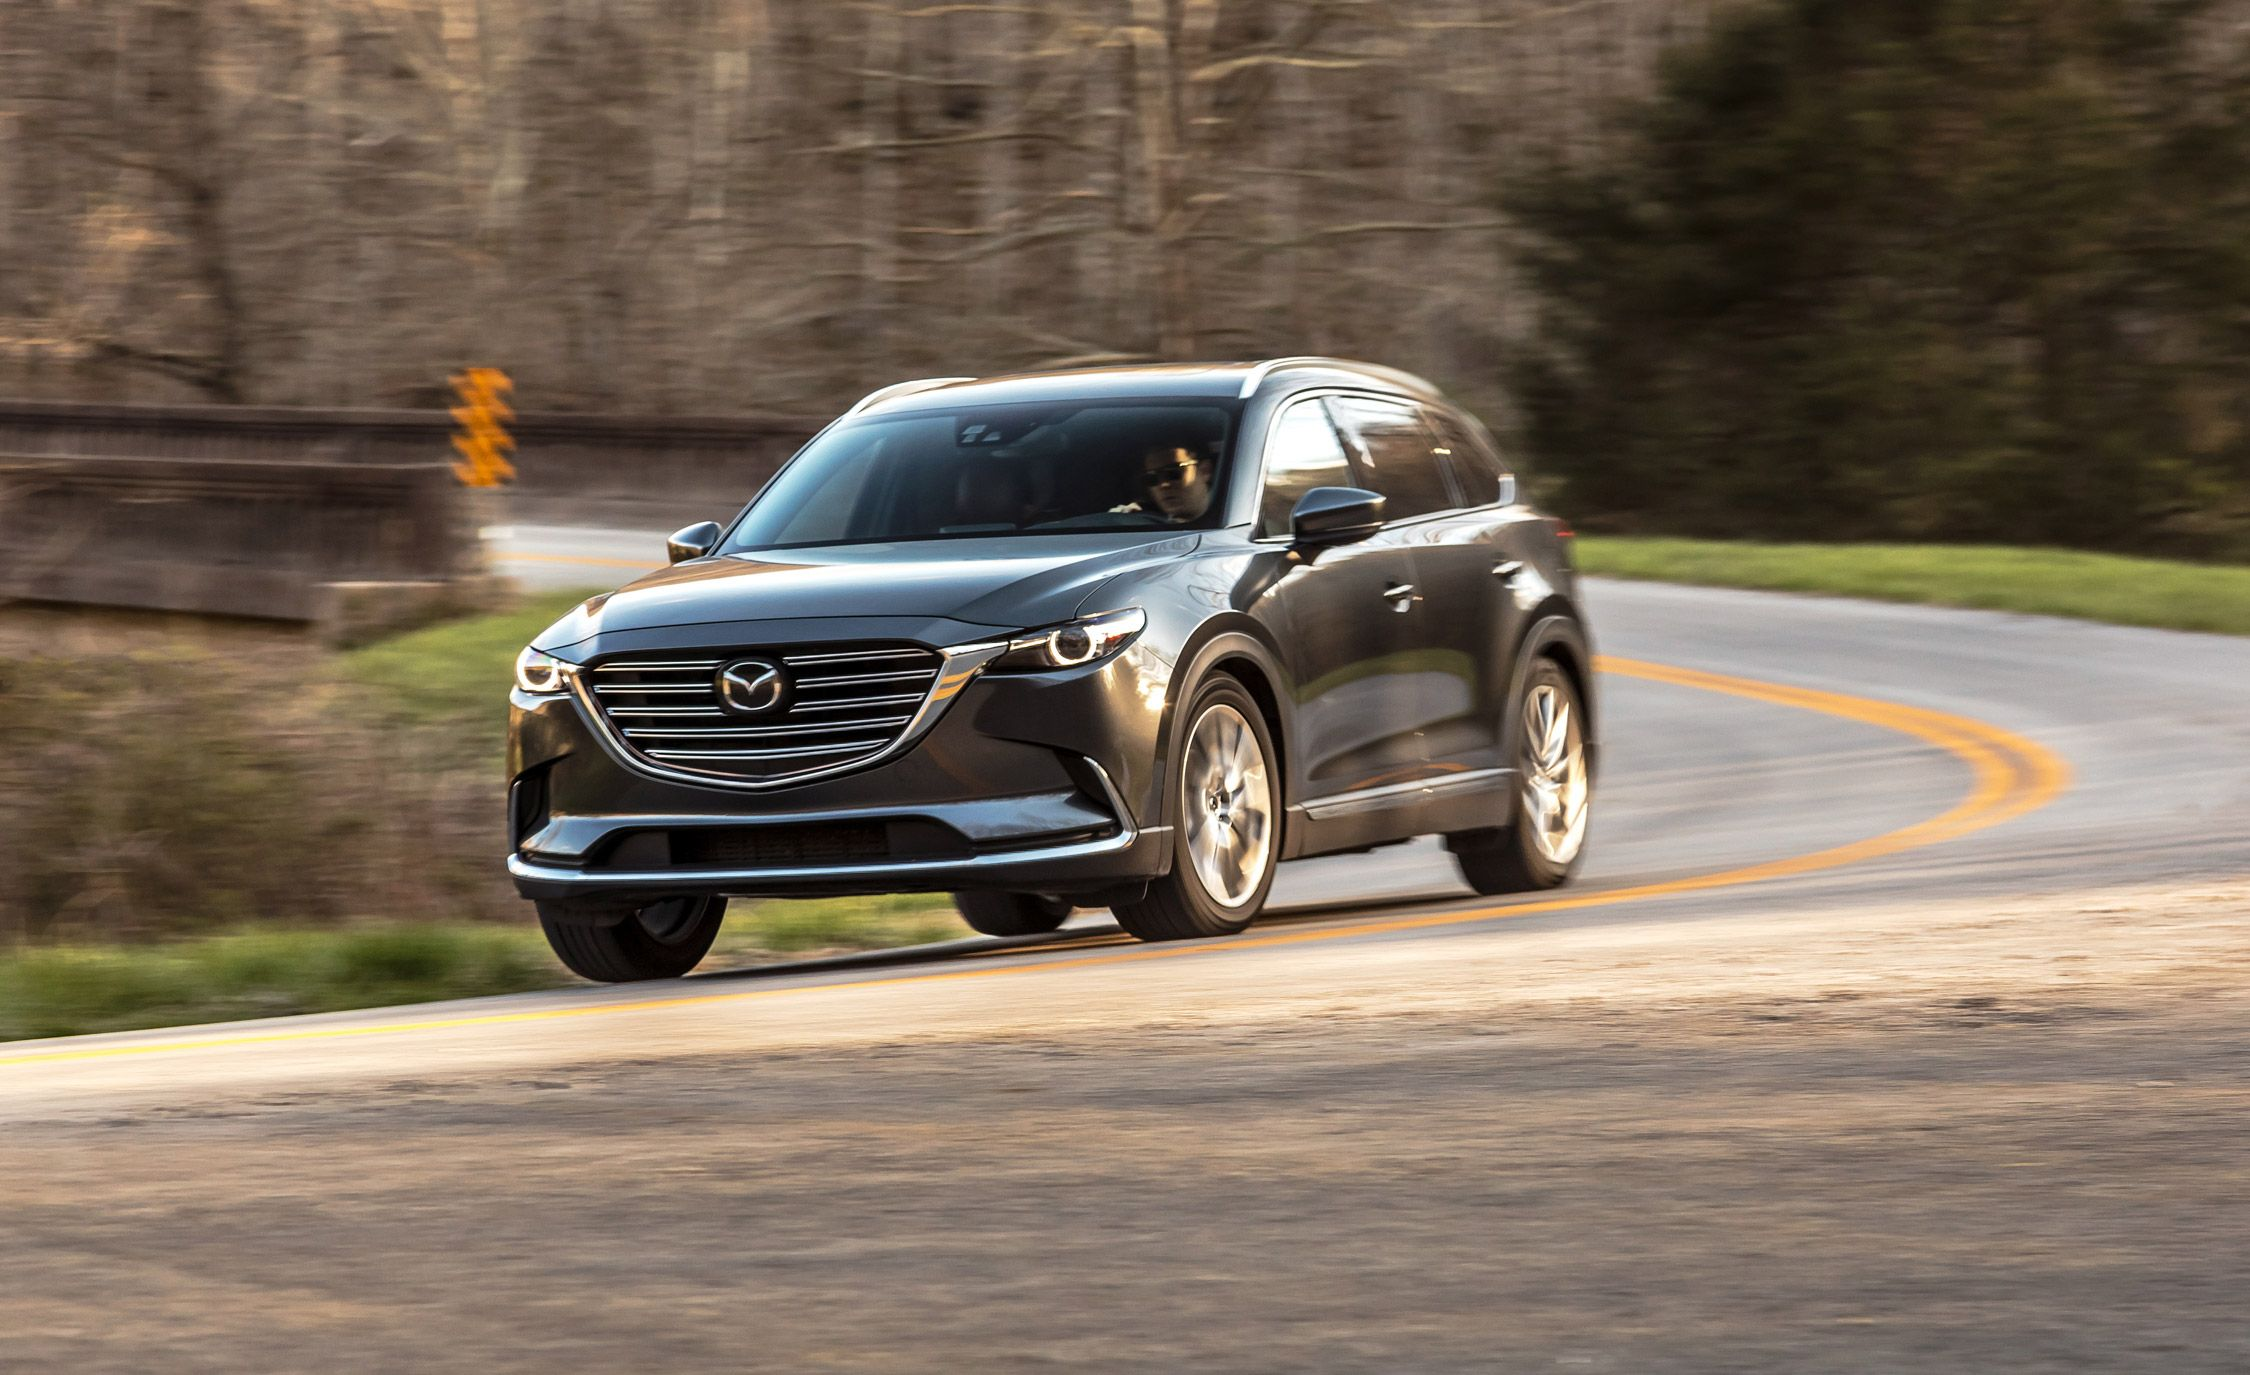 medium resolution of 2016 mazda cx 9 long term test wrap up review car and driverimage st car and driver where is the fuel filter